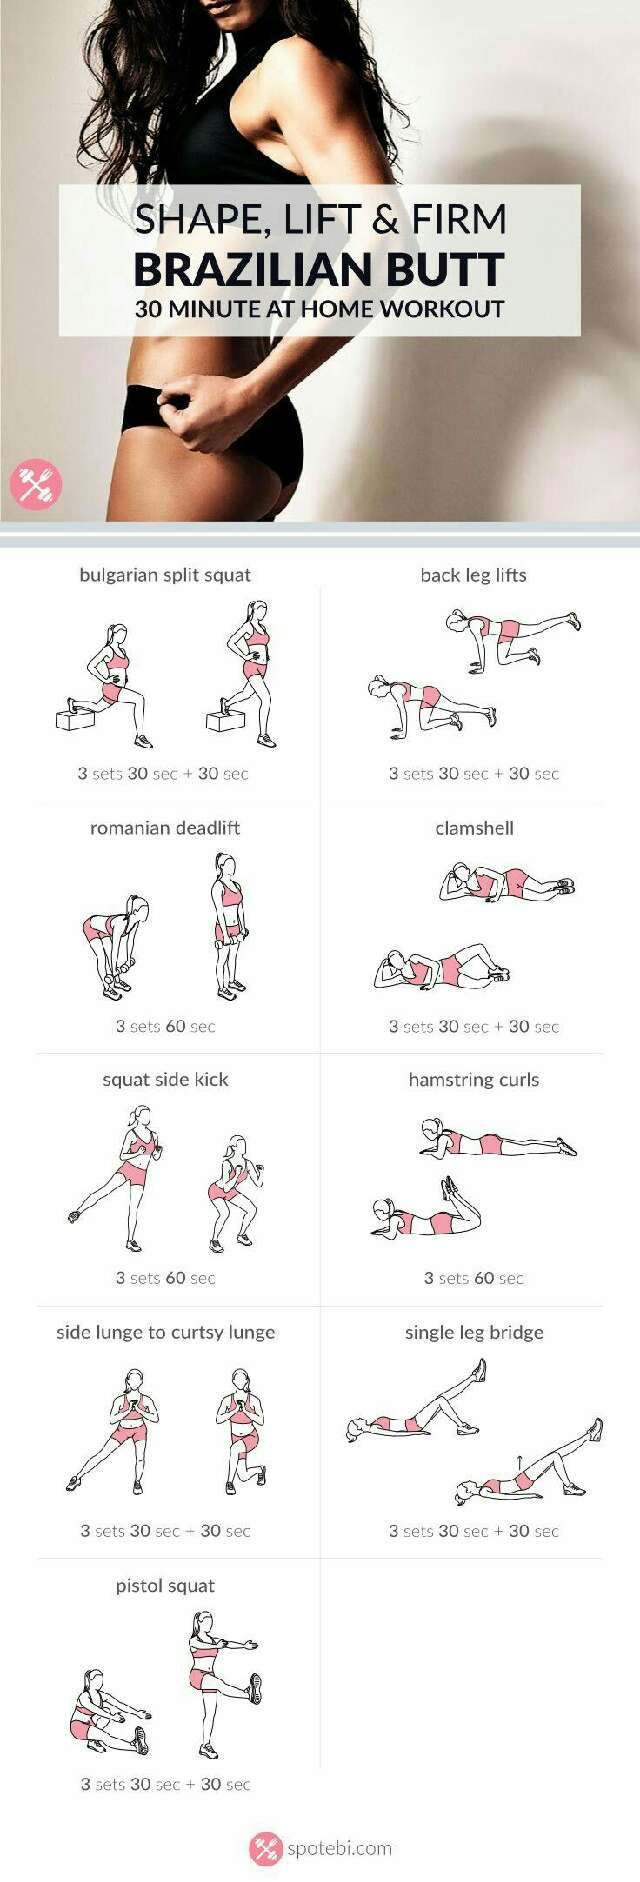 """My latest find on Trusper may blow you away: """"get ready for the summer with these workouts #springforward"""""""